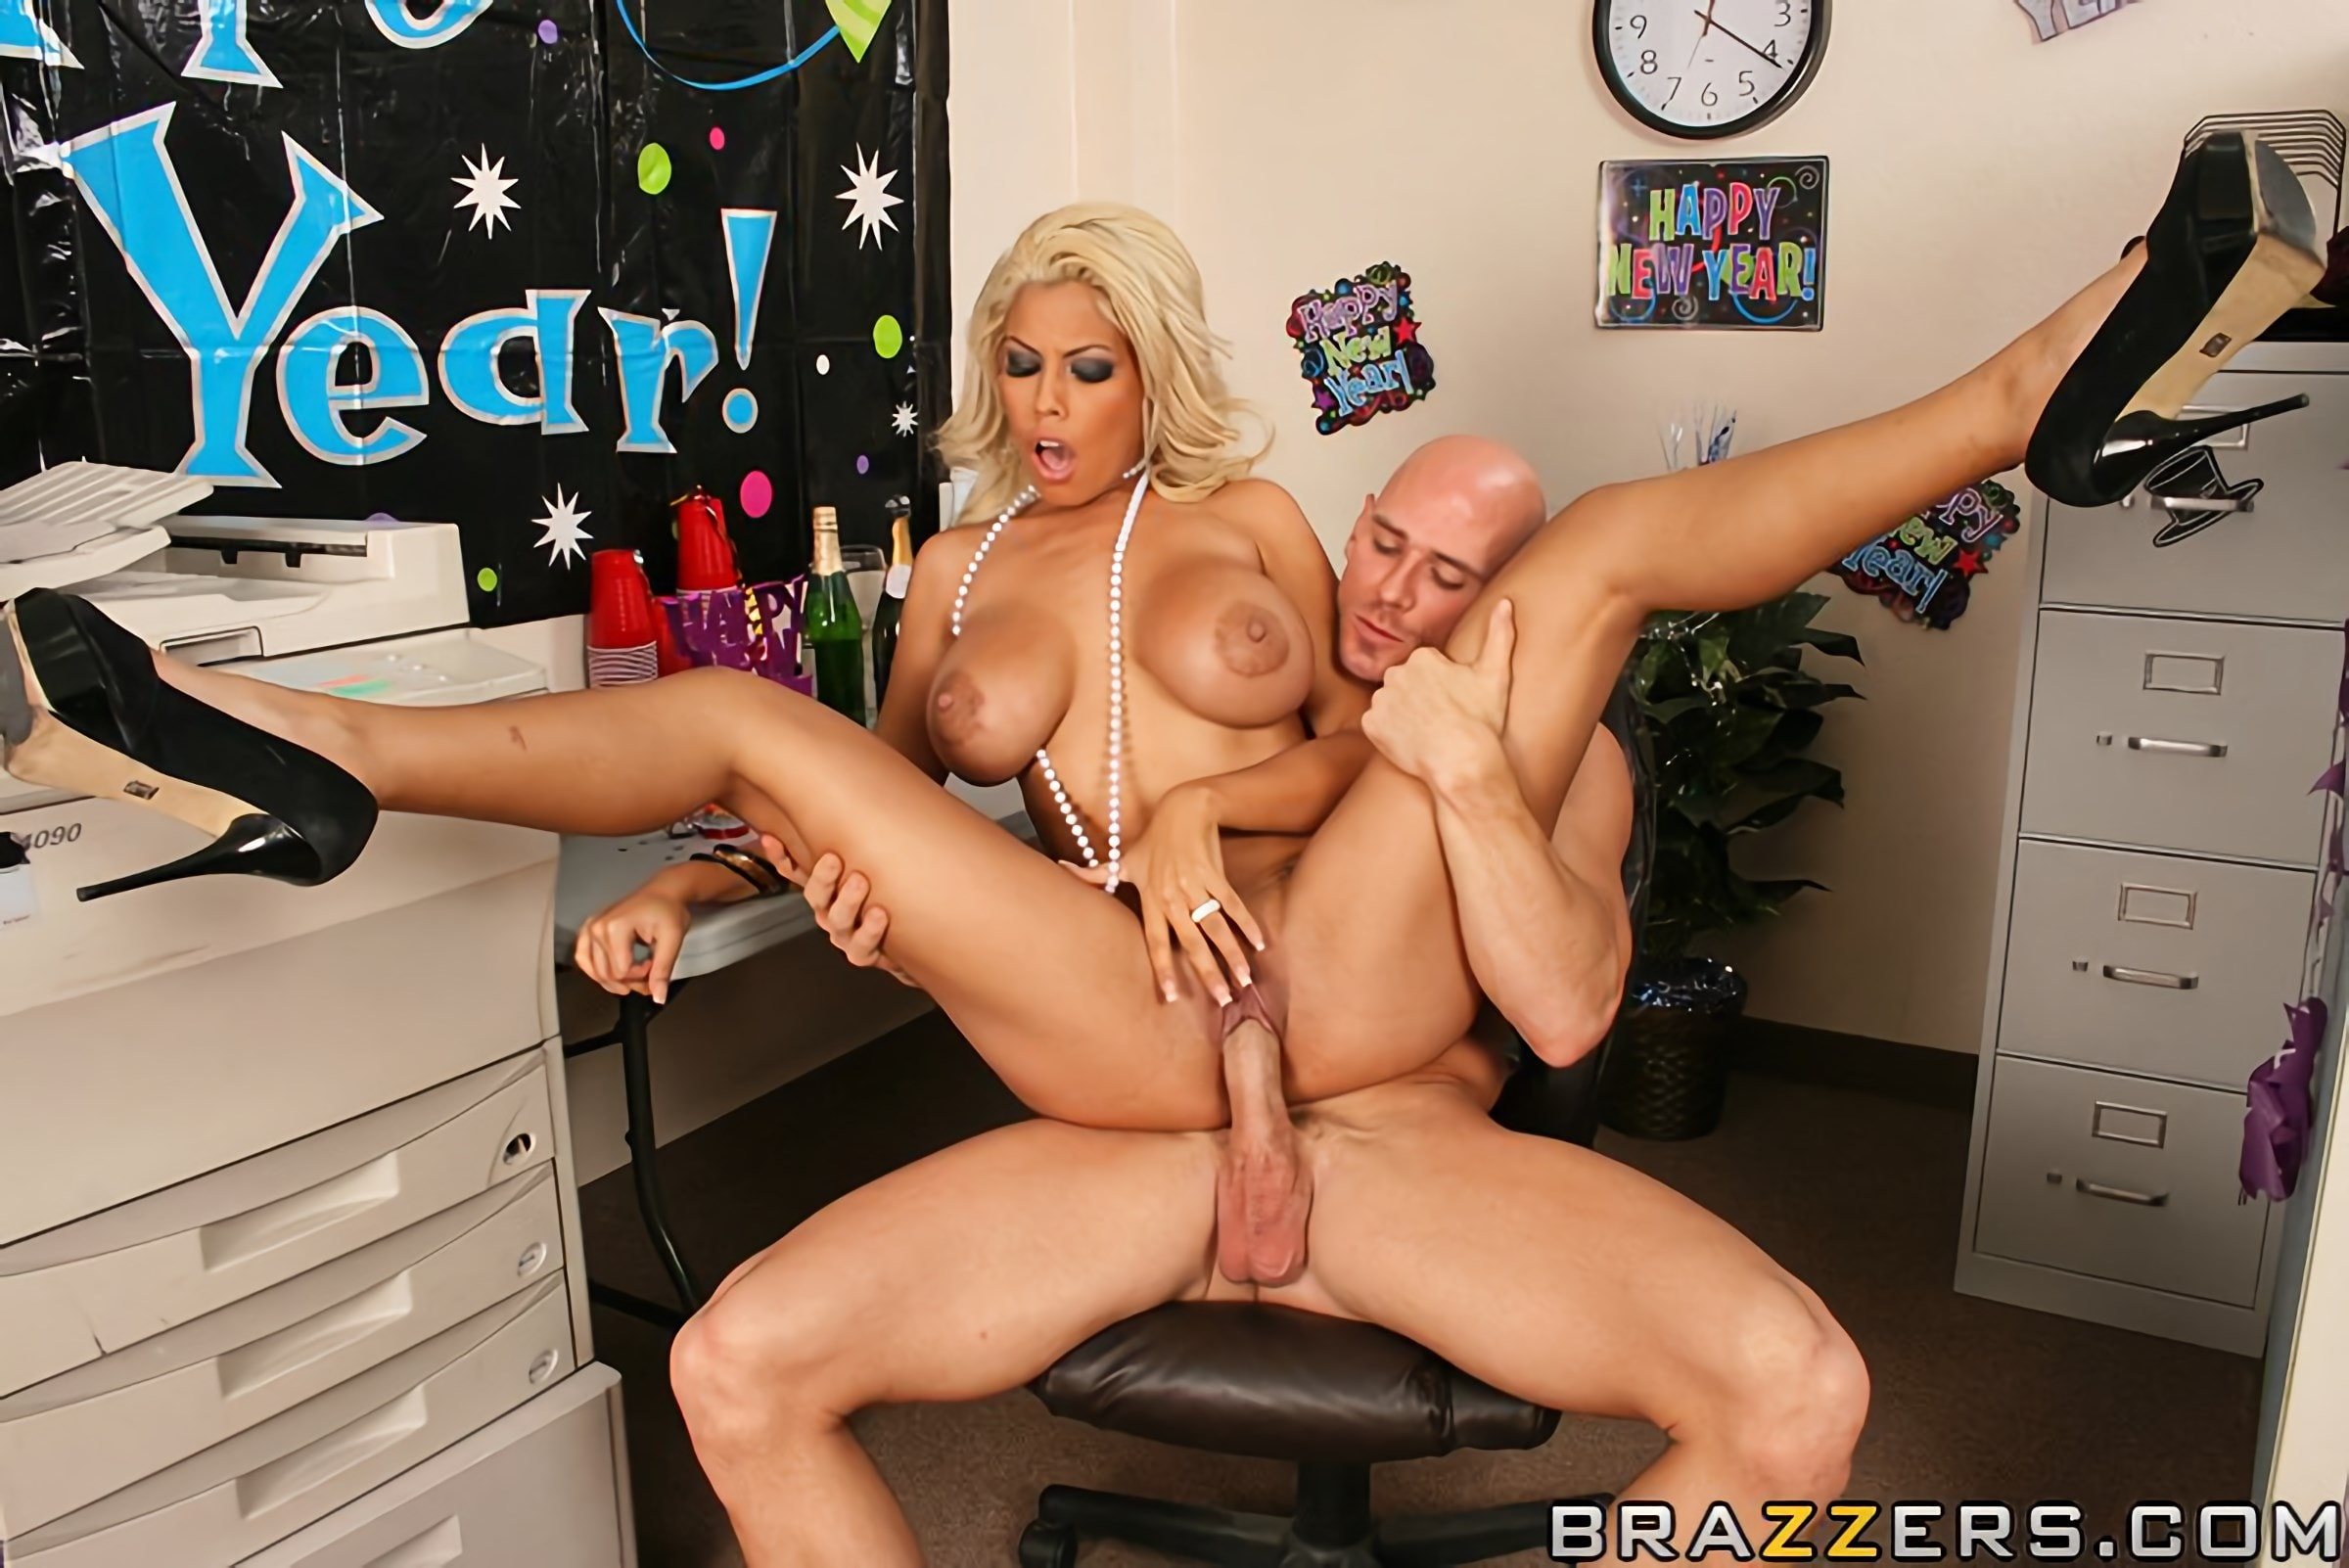 Brazzers 'Starting The New Year With A Bang' starring Bridgette B (Photo 15)